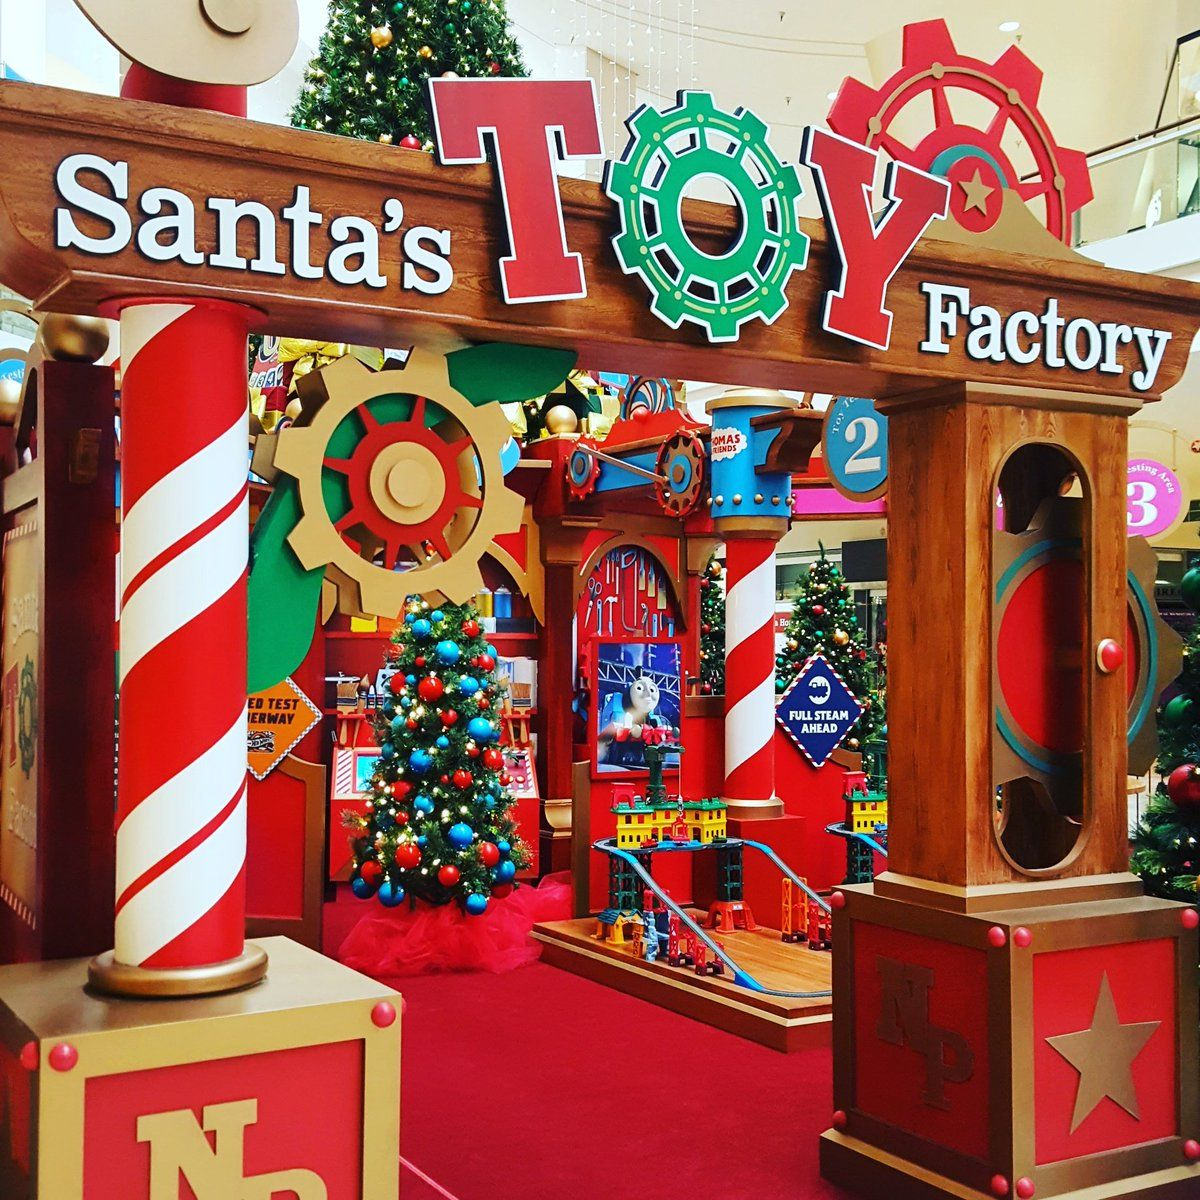 Shop Decorations For Christmas: Image Result For Santa Toys Factory